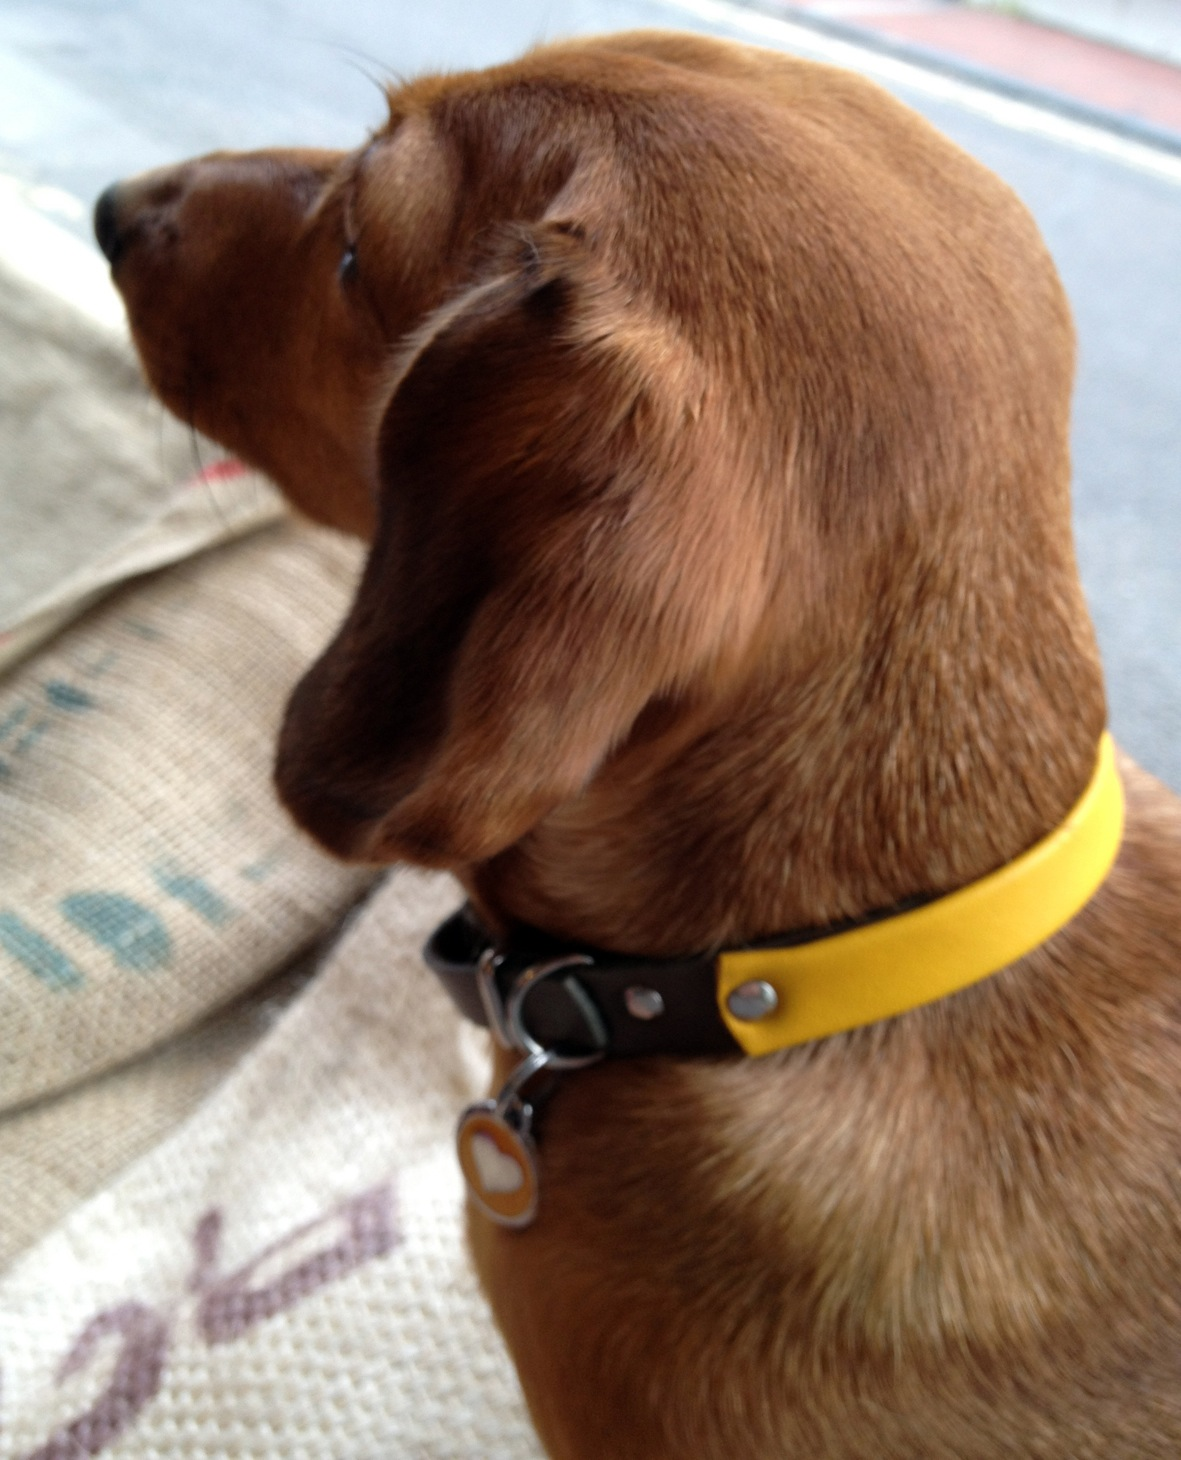 Honey in her Yellow Two-tone collar